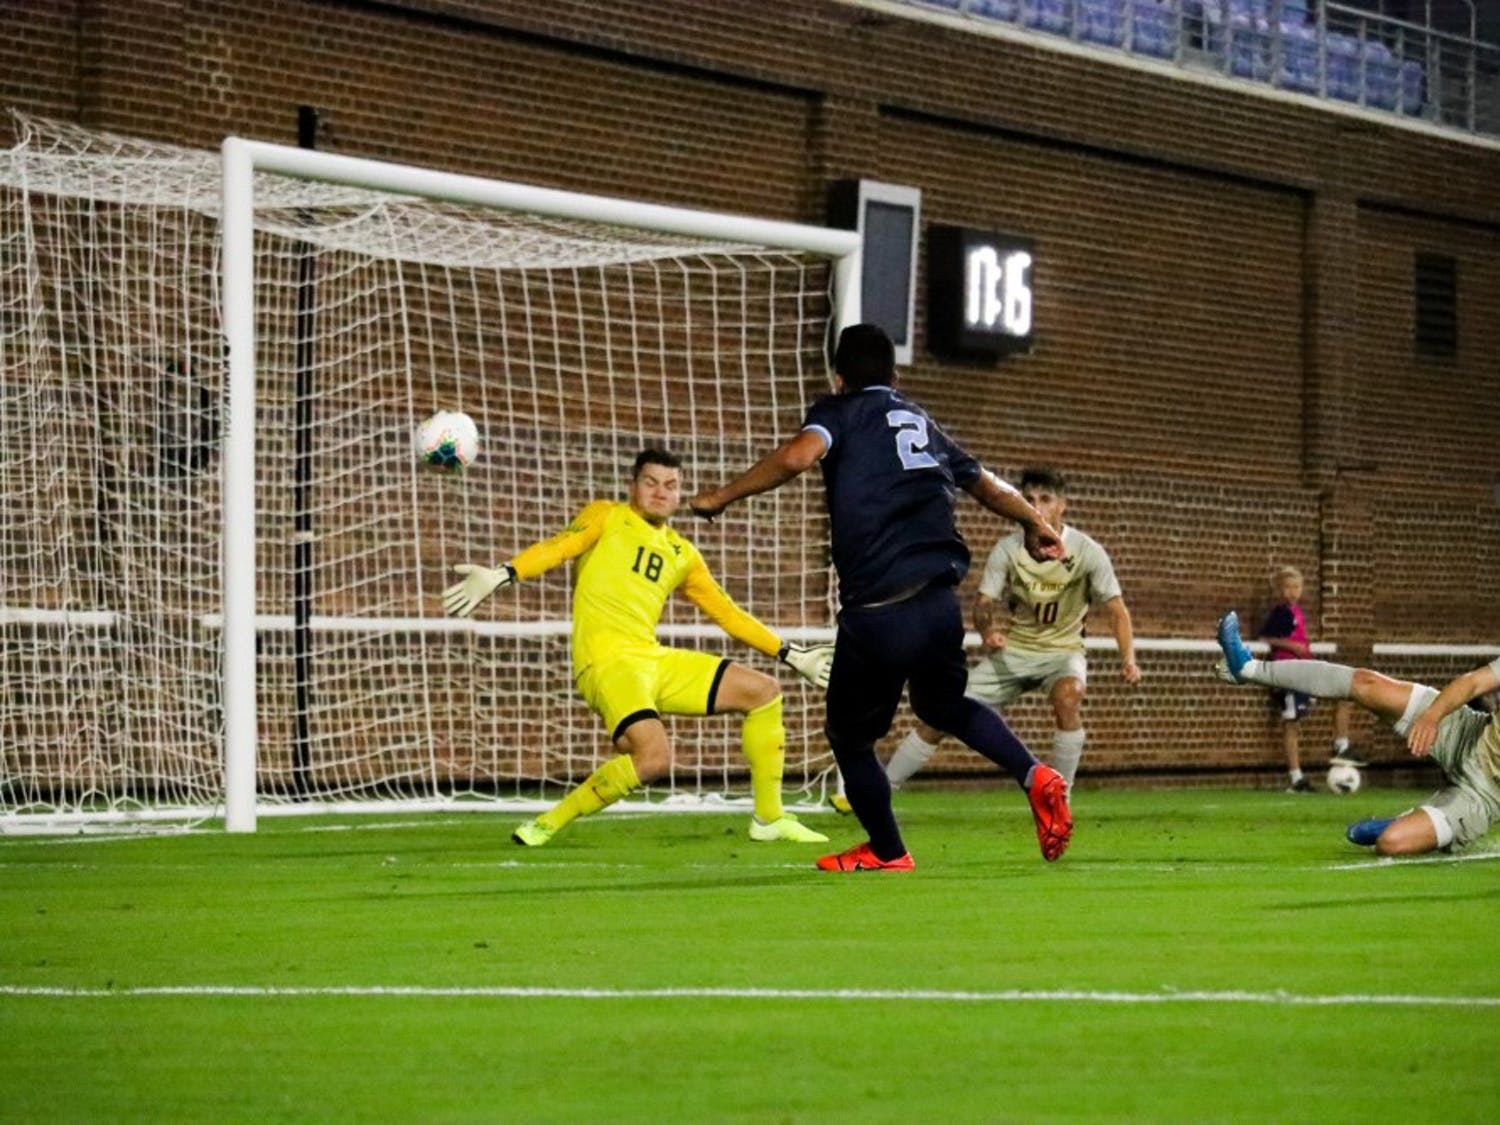 Senior midfielder Mauricio Pineda (2) scores a goal against WVU goalie Steven Tekesky (18) in the first half during the team's 3-1 victory over West Virginia on Tuesday, Oct. 8, 2019 on Dorrance Field. Pineda scored two goals during the win.